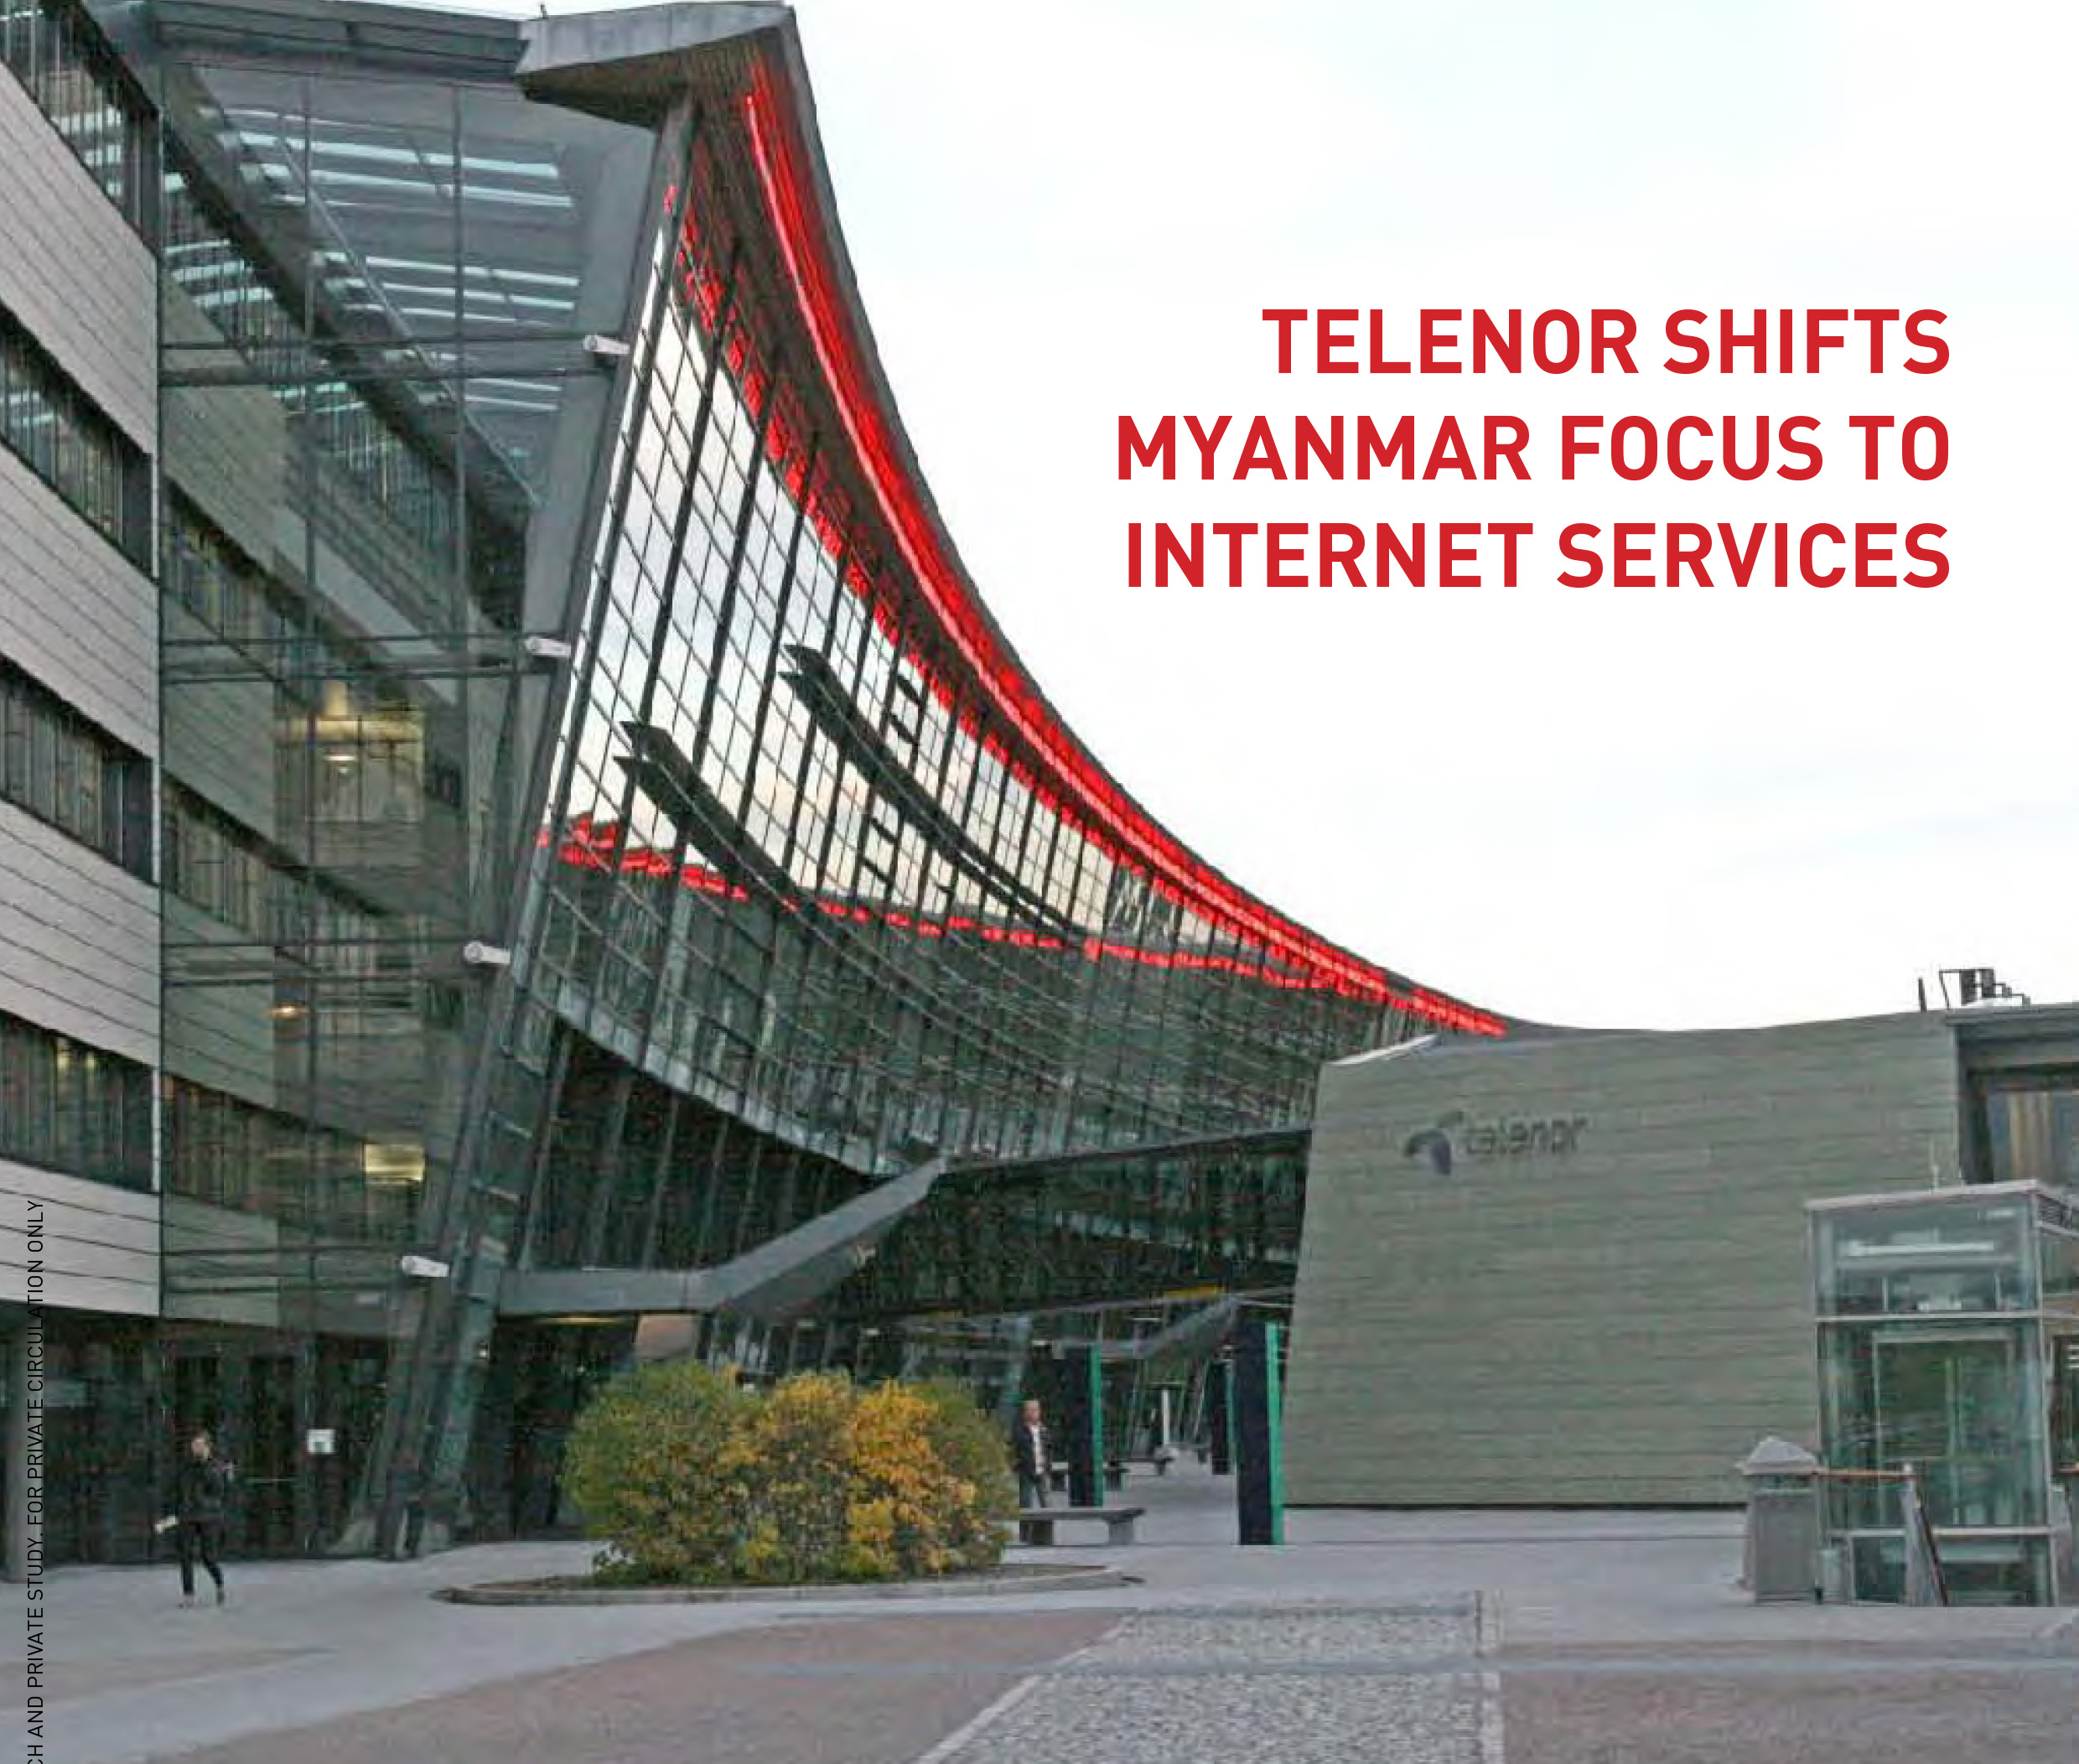 TElENOR SHIFTS MYANMAR FOCUS ON INTERNET SERVICES